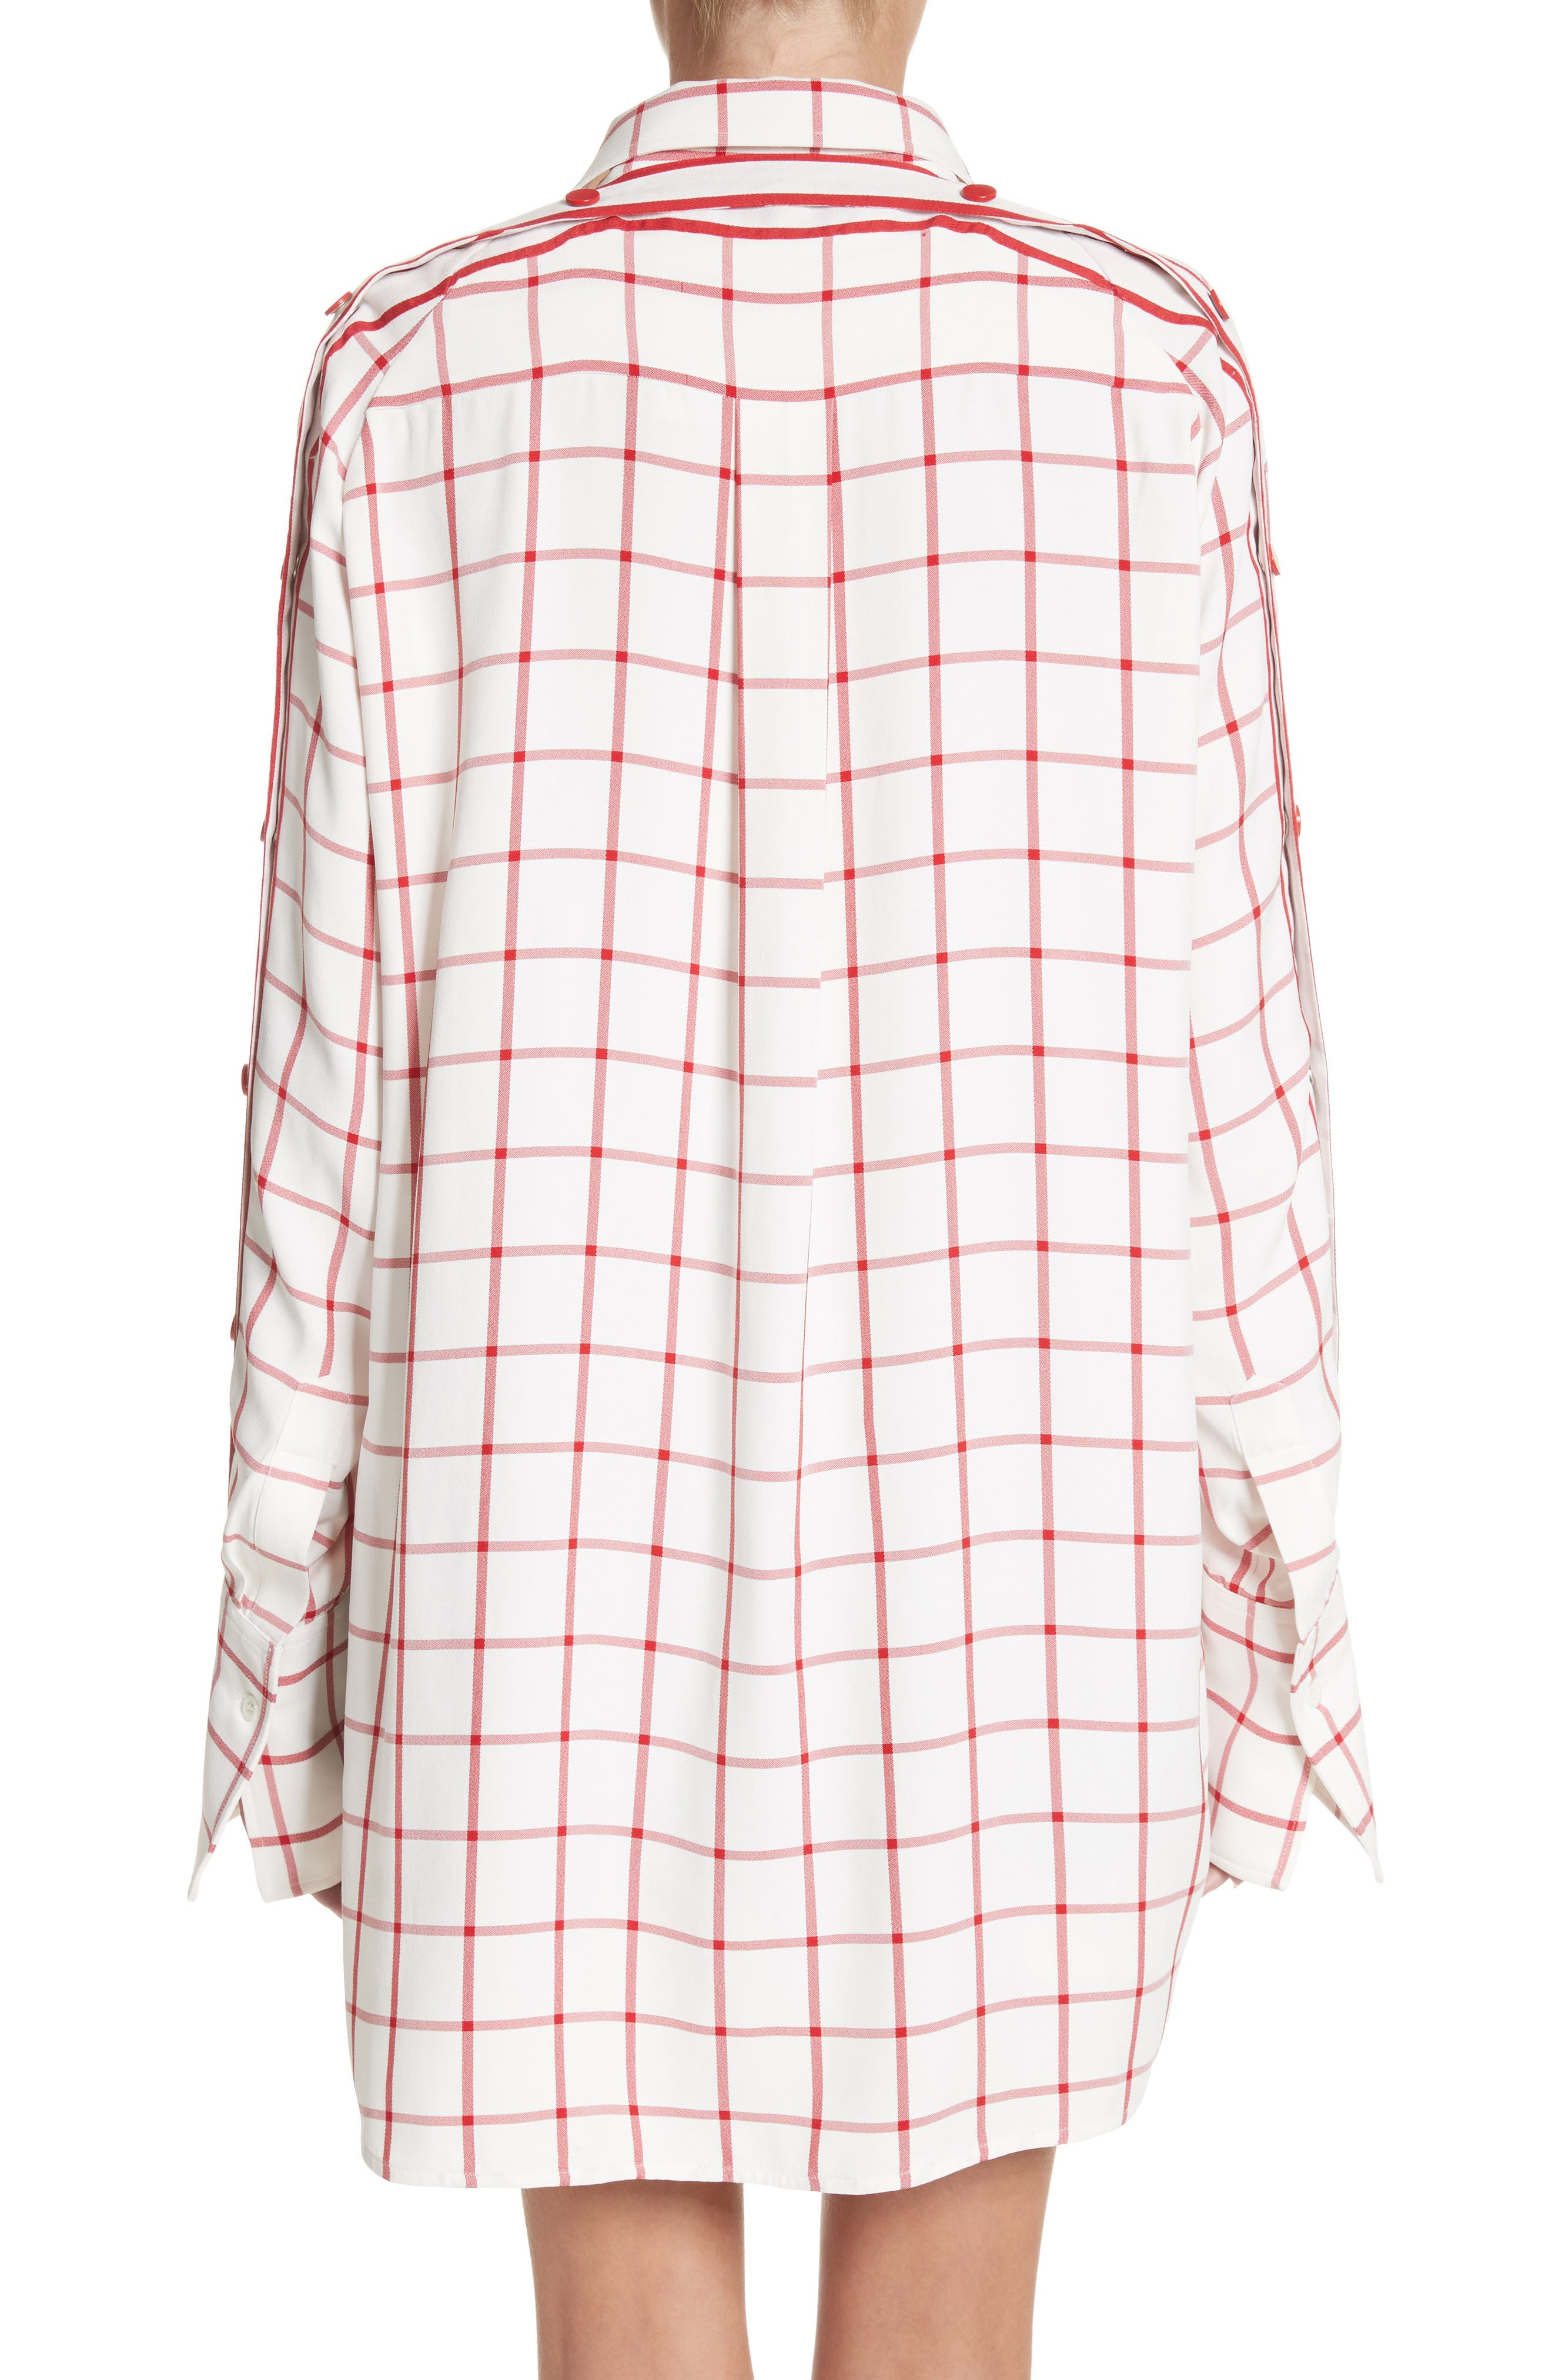 Windowpane Plaid Snap Sleeve Shirt,                             Alternate thumbnail 2, color,                             Ivory/ Red